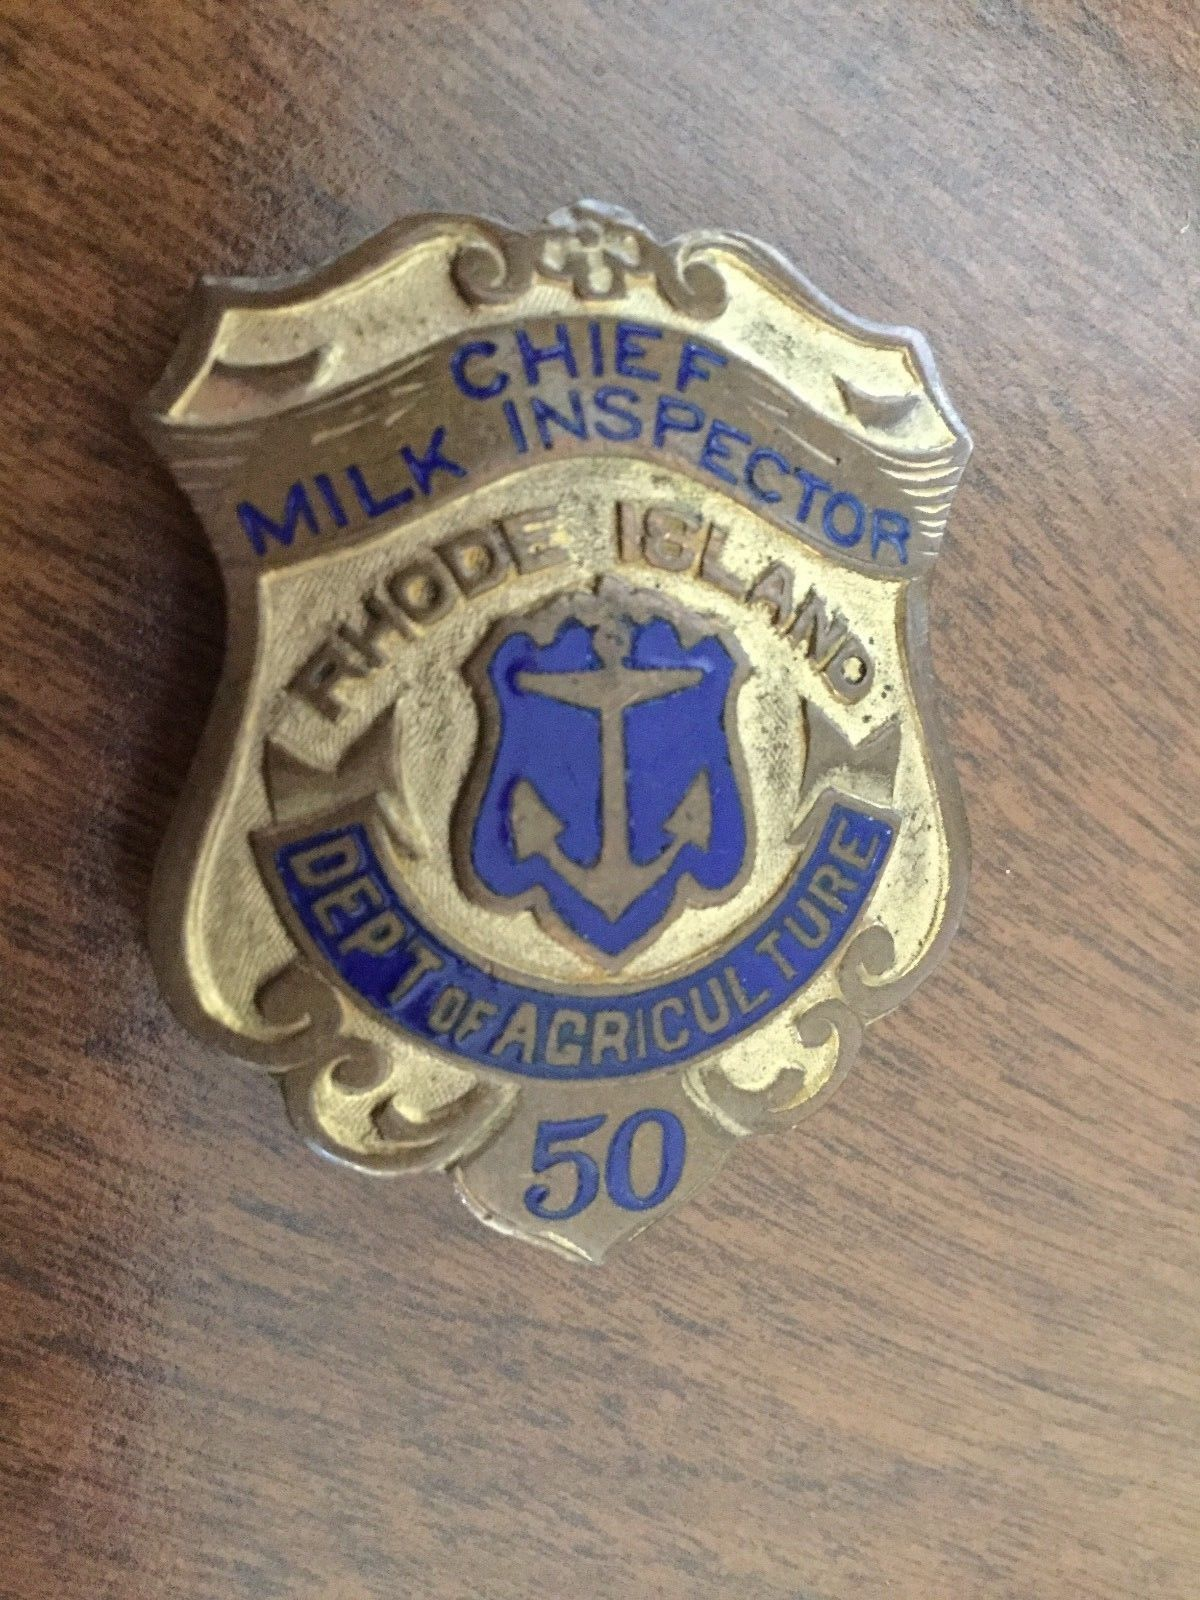 Chief Milk Inspector, Department of Agriculture, Rhode